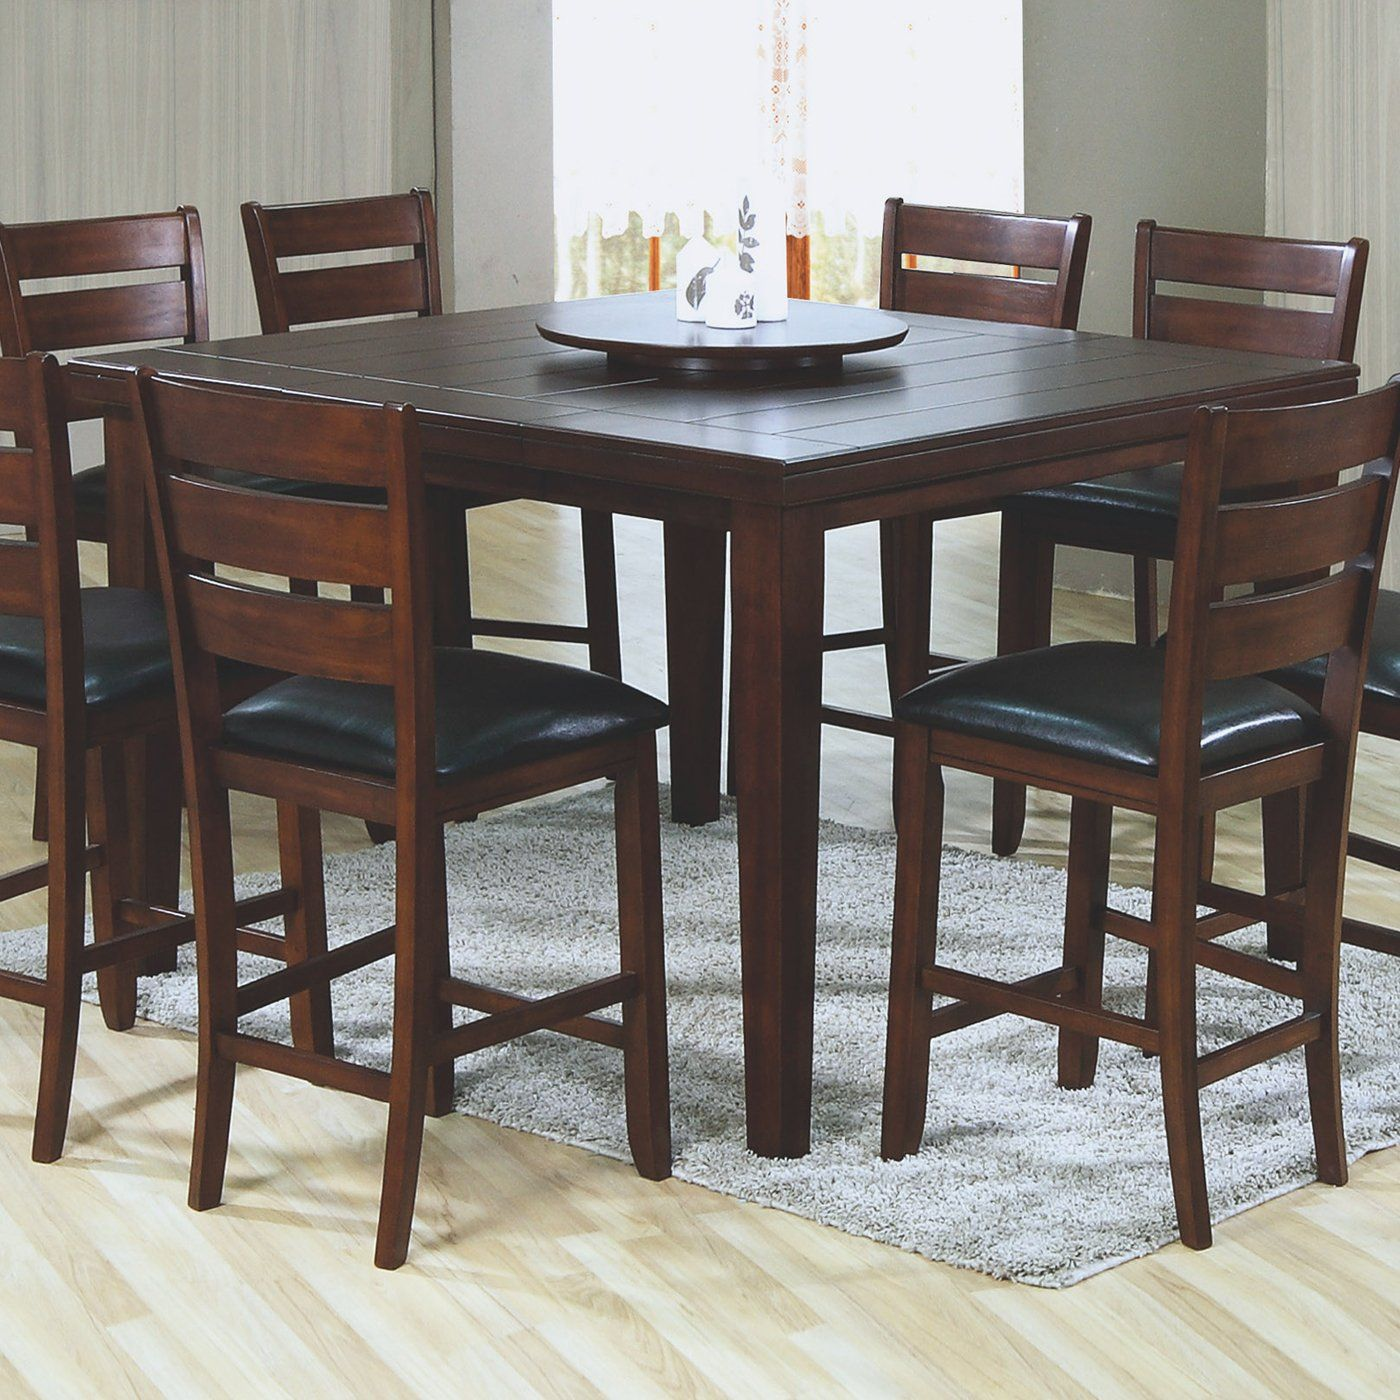 High Kitchen Table Set high top kitchen table - oware